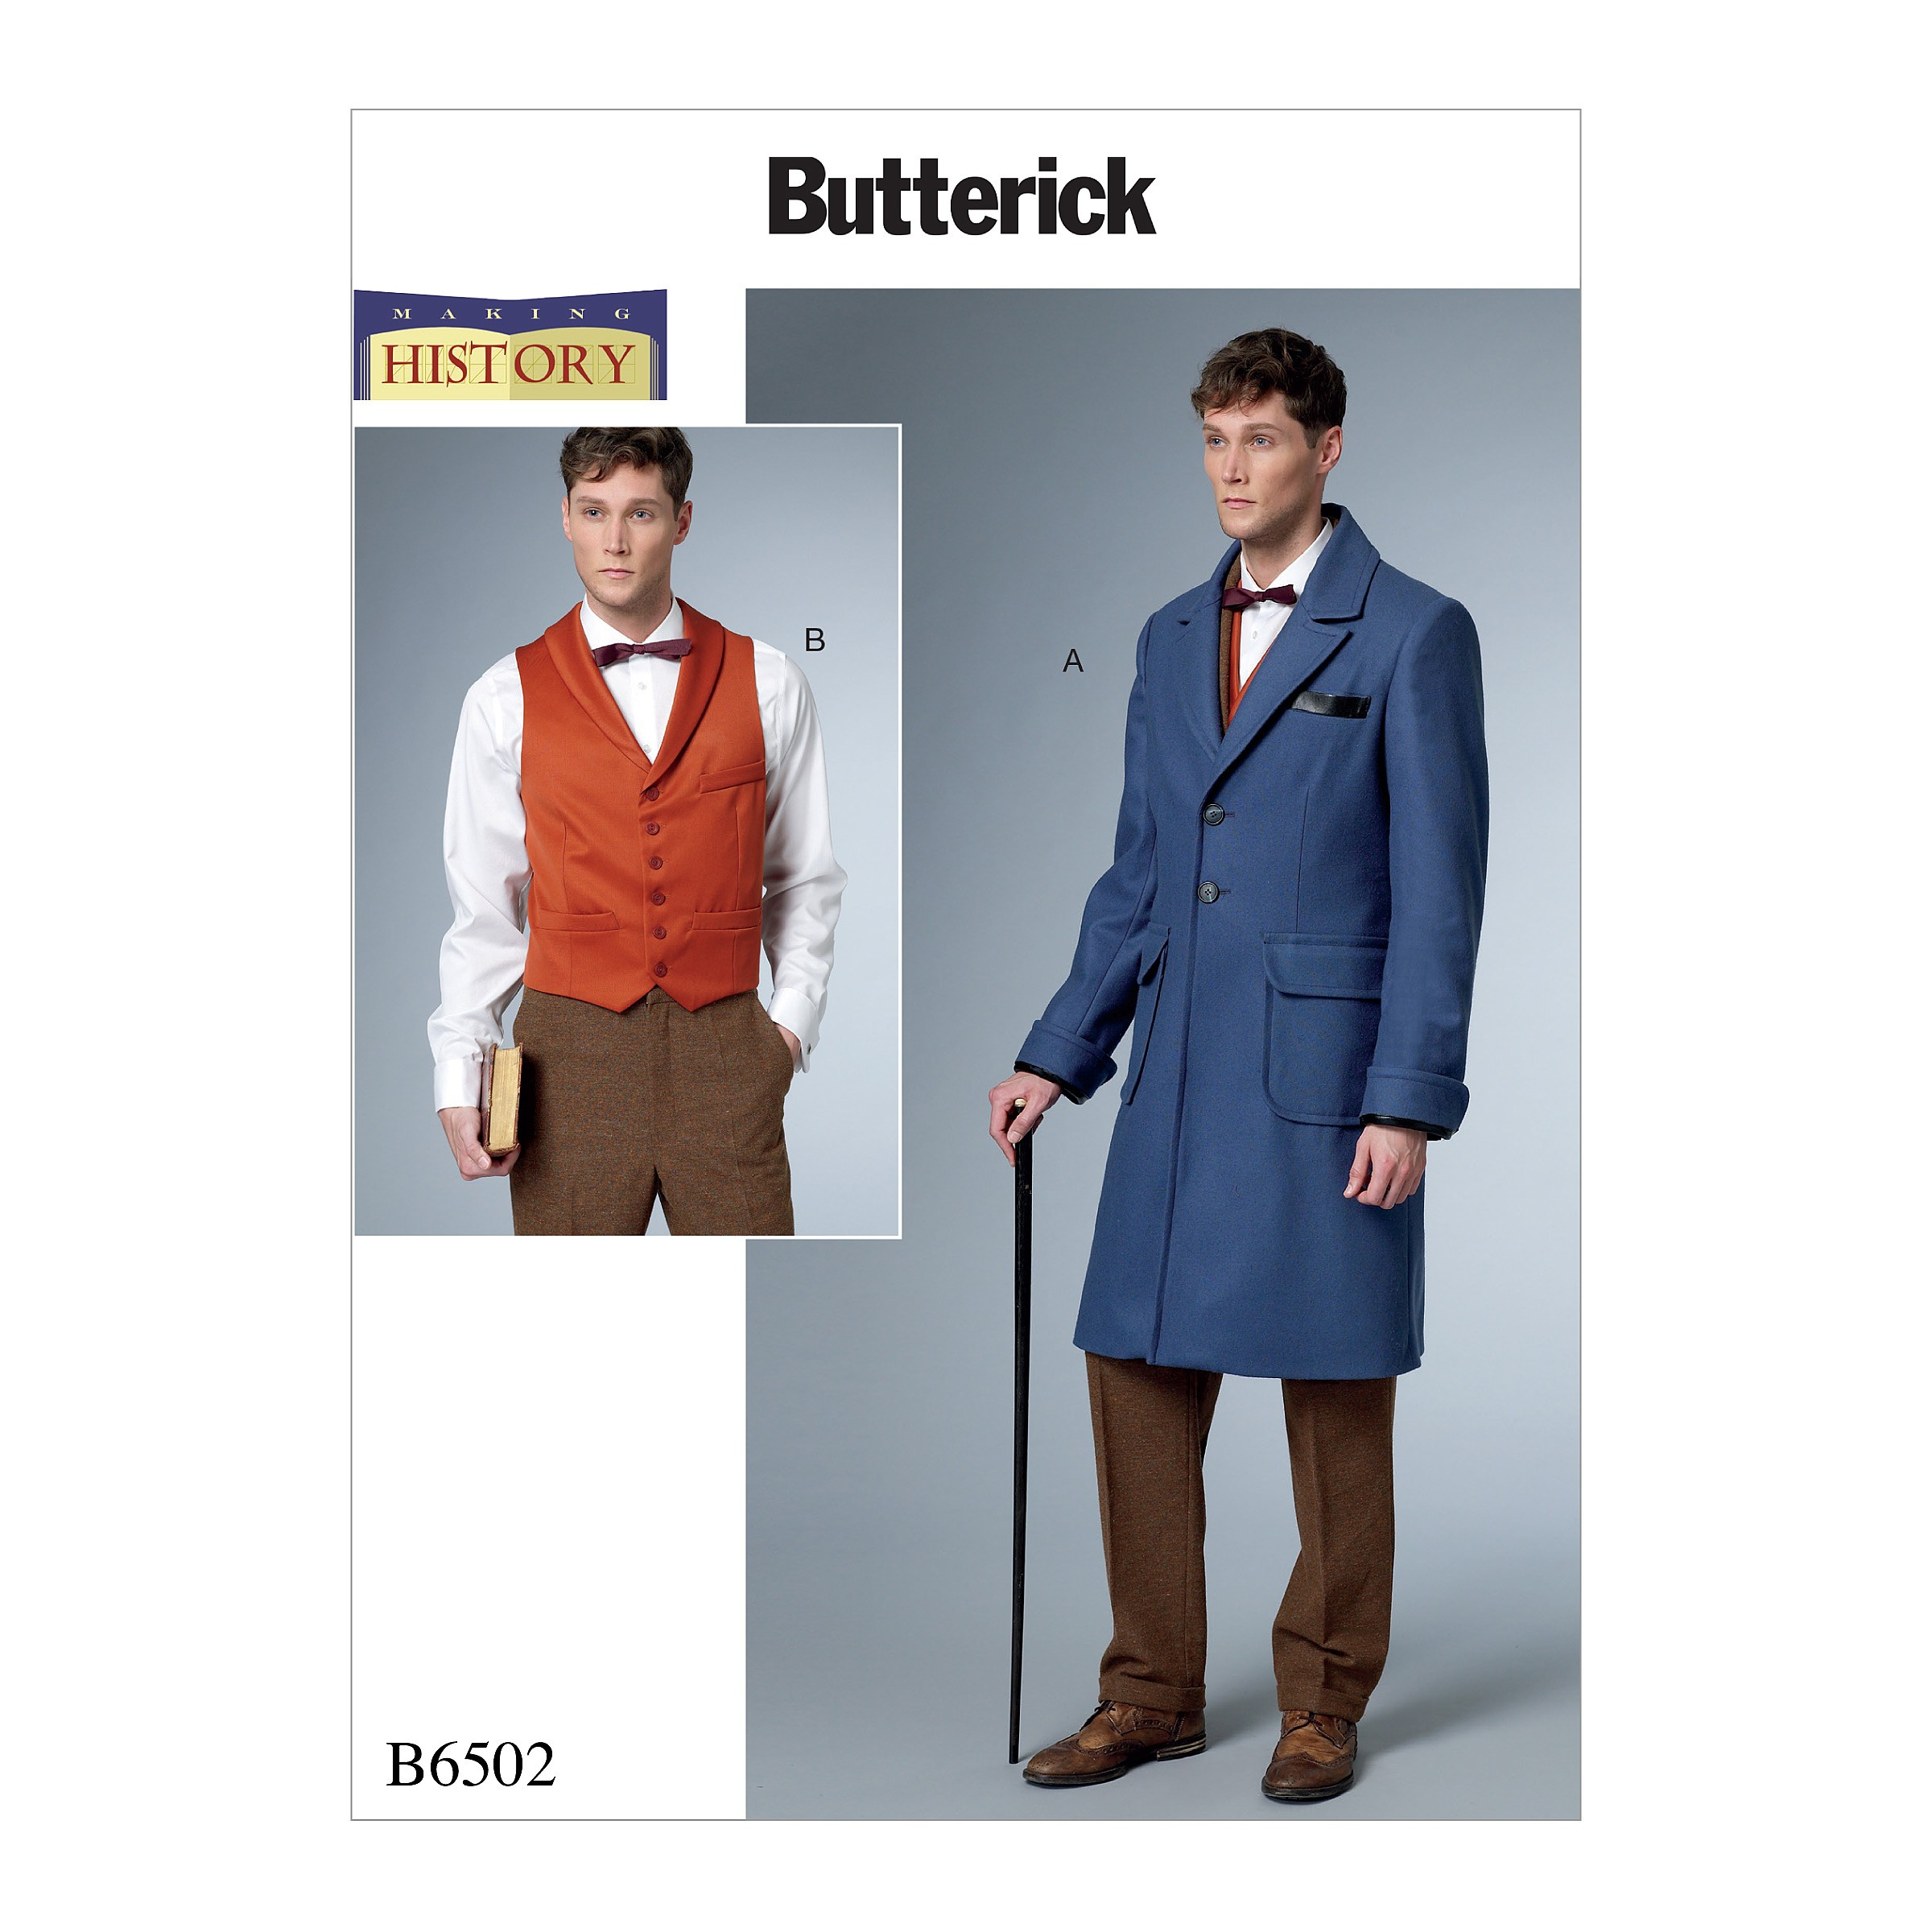 Butterick Sewing Pattern 6502 Men's Single-Breasted Lined Coat With Back Belt.